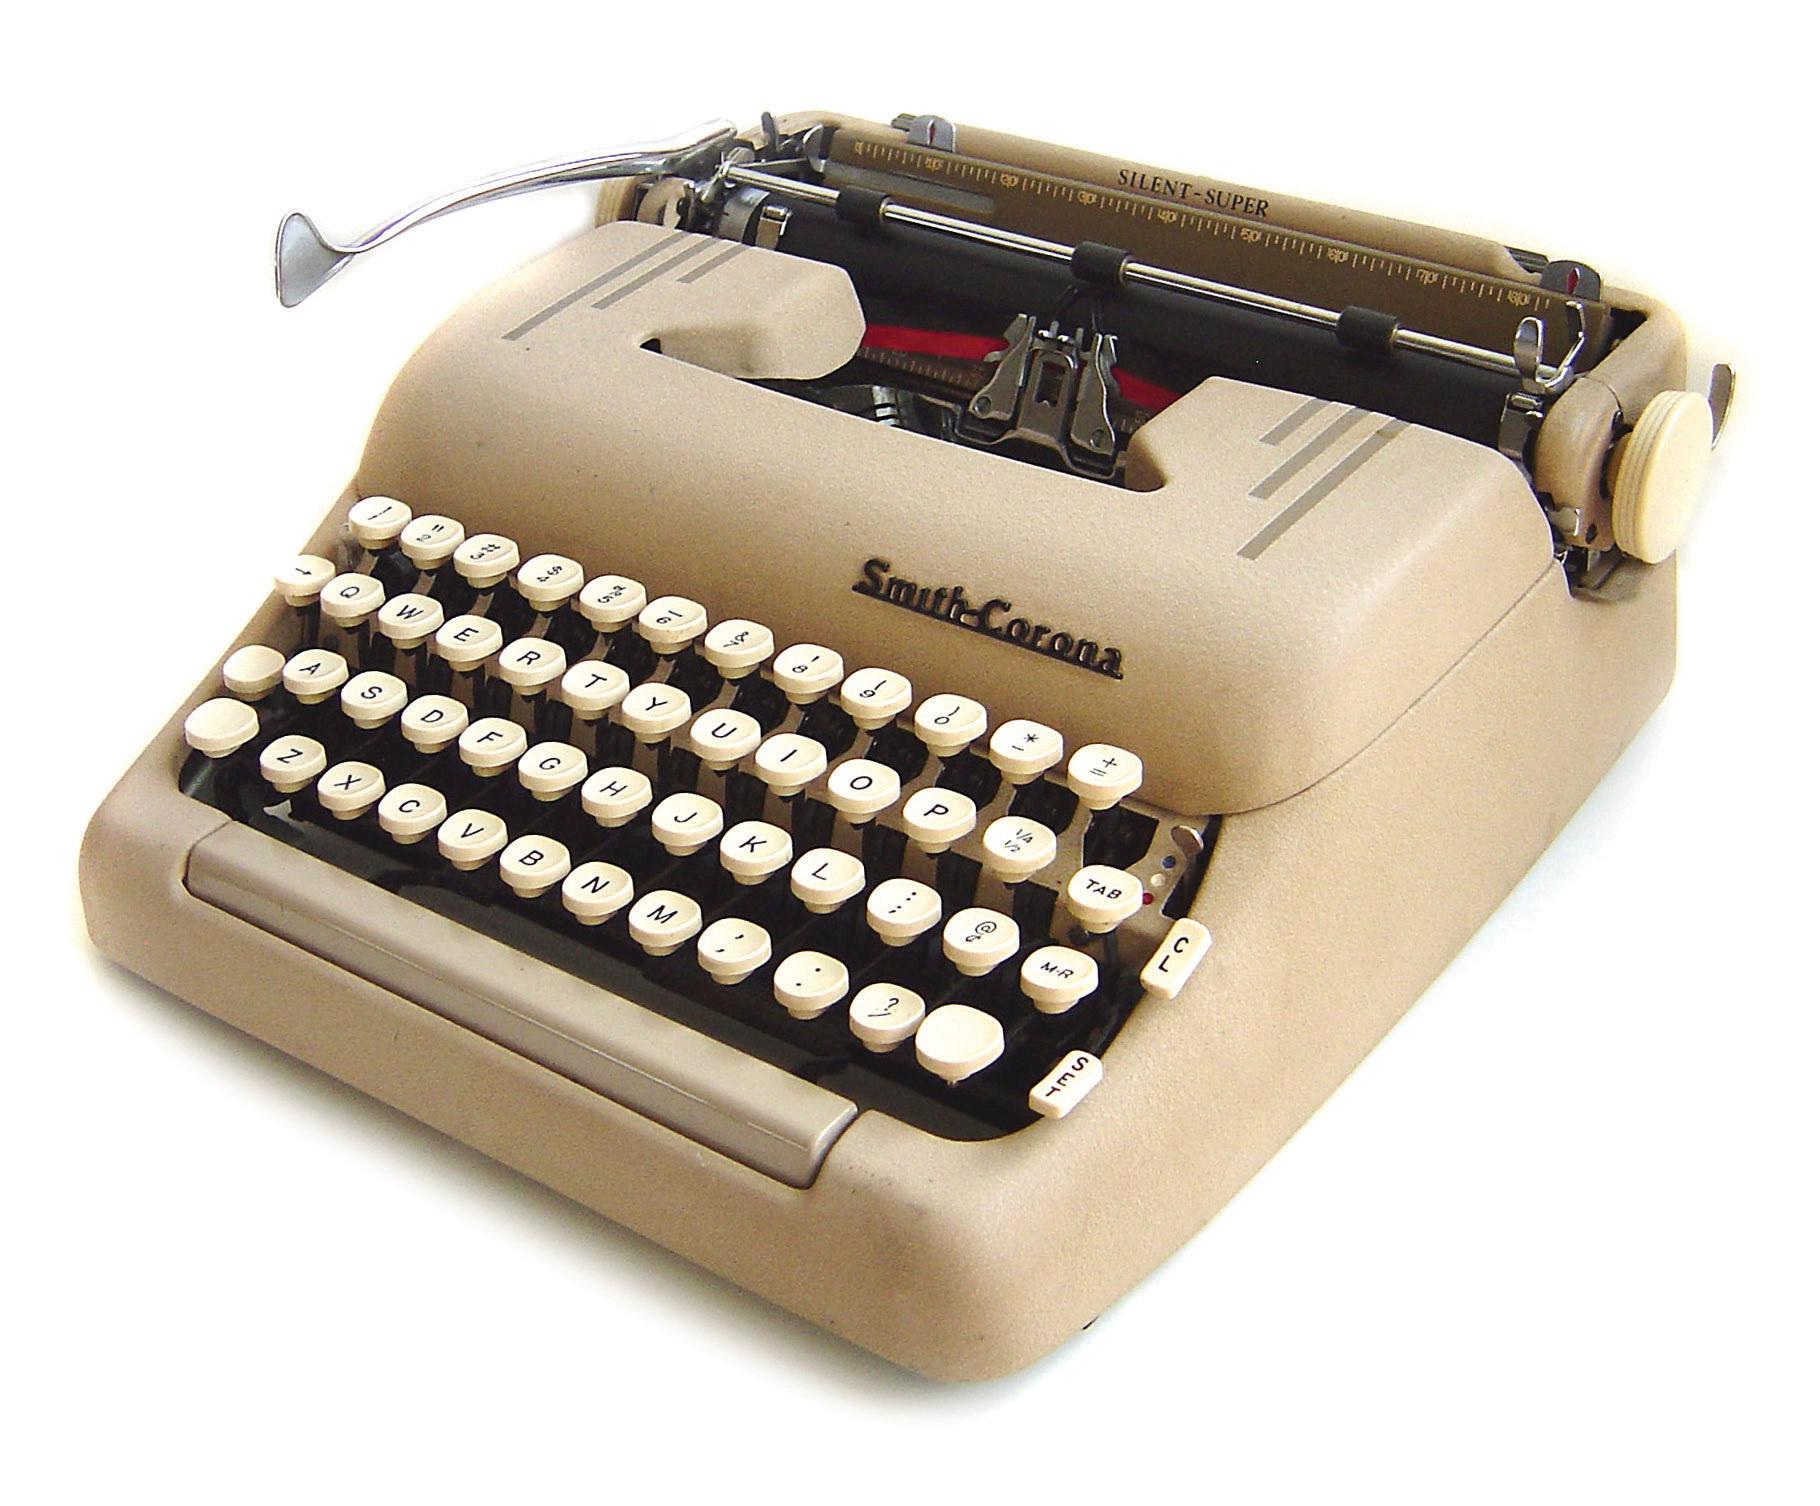 The Smith-Corona Silent-Super was produced in the 1950s. 1956.